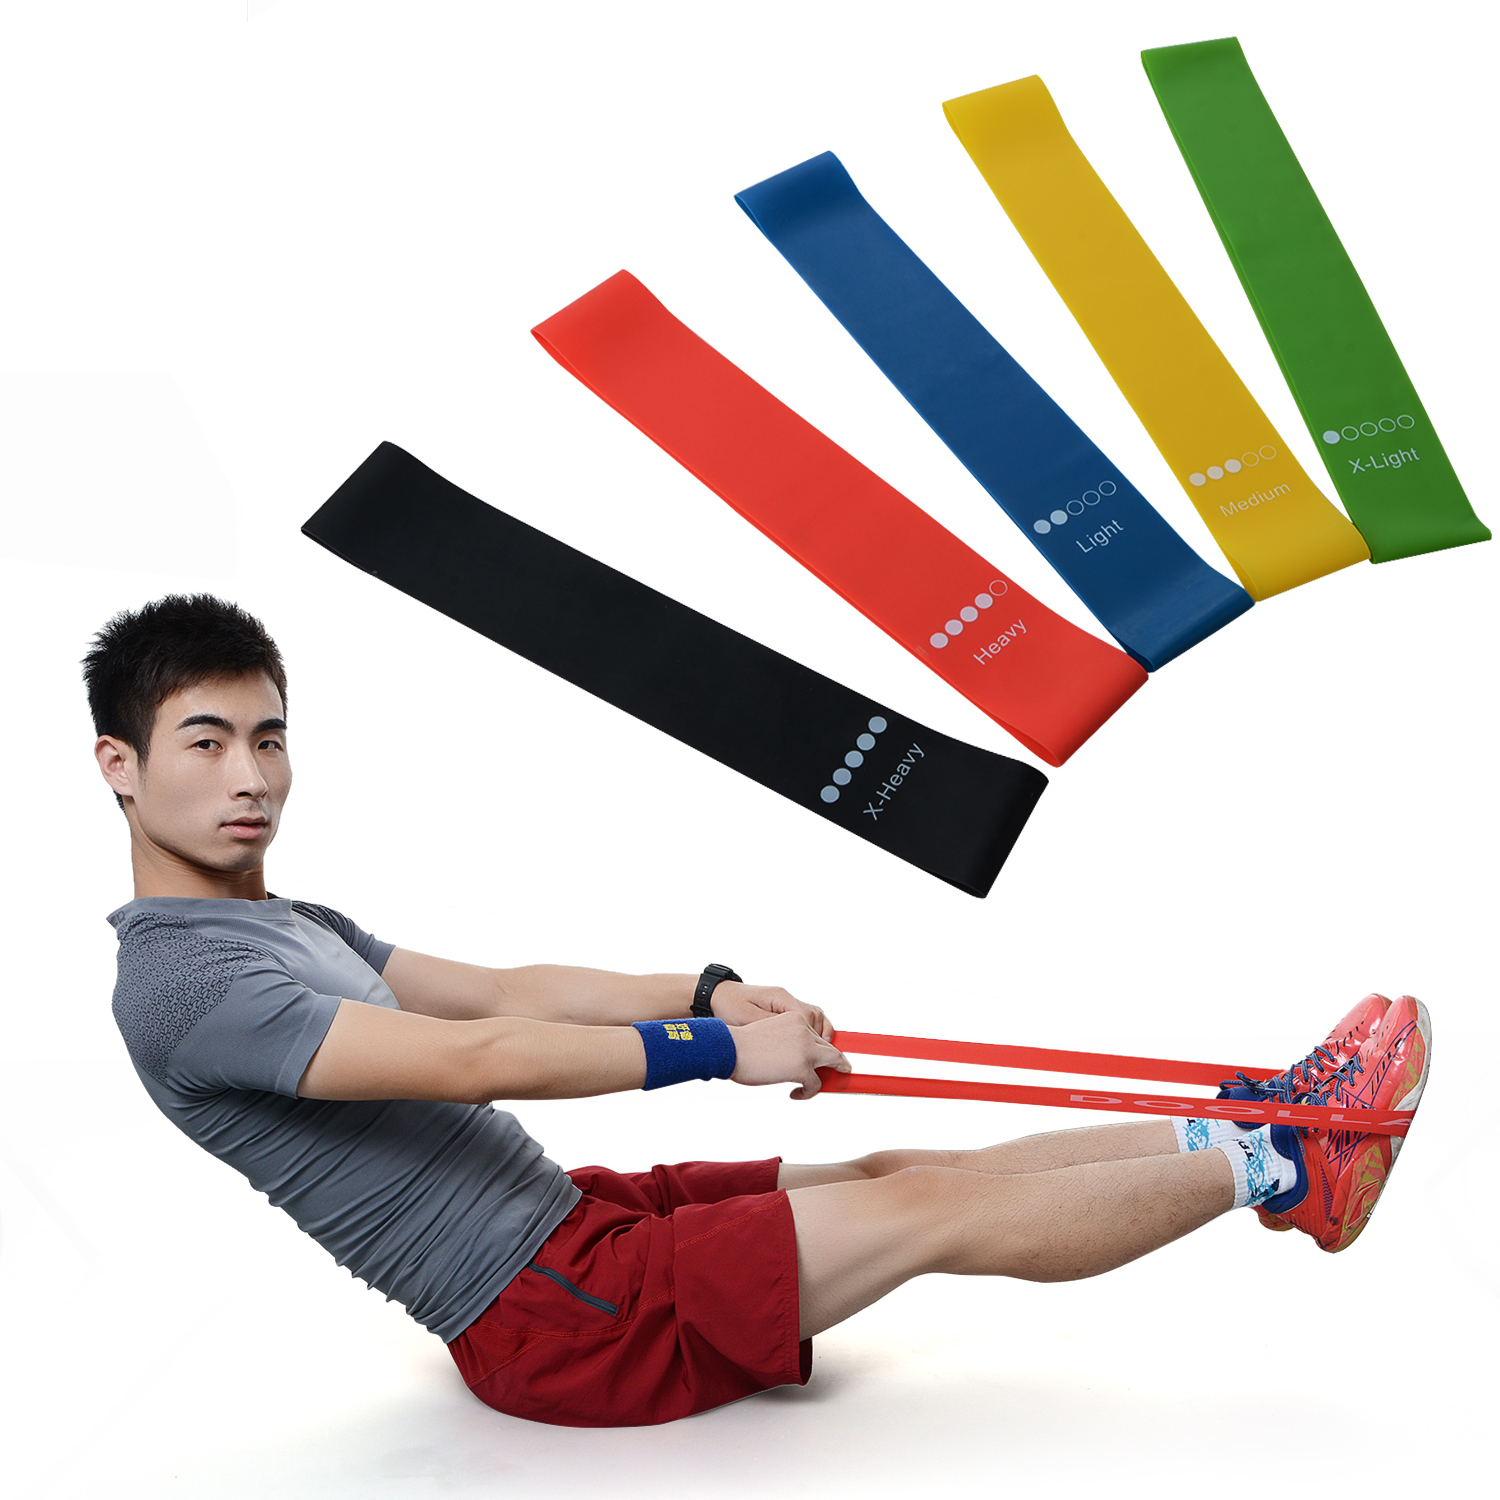 5Pcs/Set 0.35-1.1mm Yoga Resistance Bands Arm Thigh Strength Training Fitness Belt Exerciser Force Equipment Strap Wholesale 5pcs set 0 35 1 1mm yoga resistance bands arm thigh strength training fitness belt exerciser force equipment strap wholesale